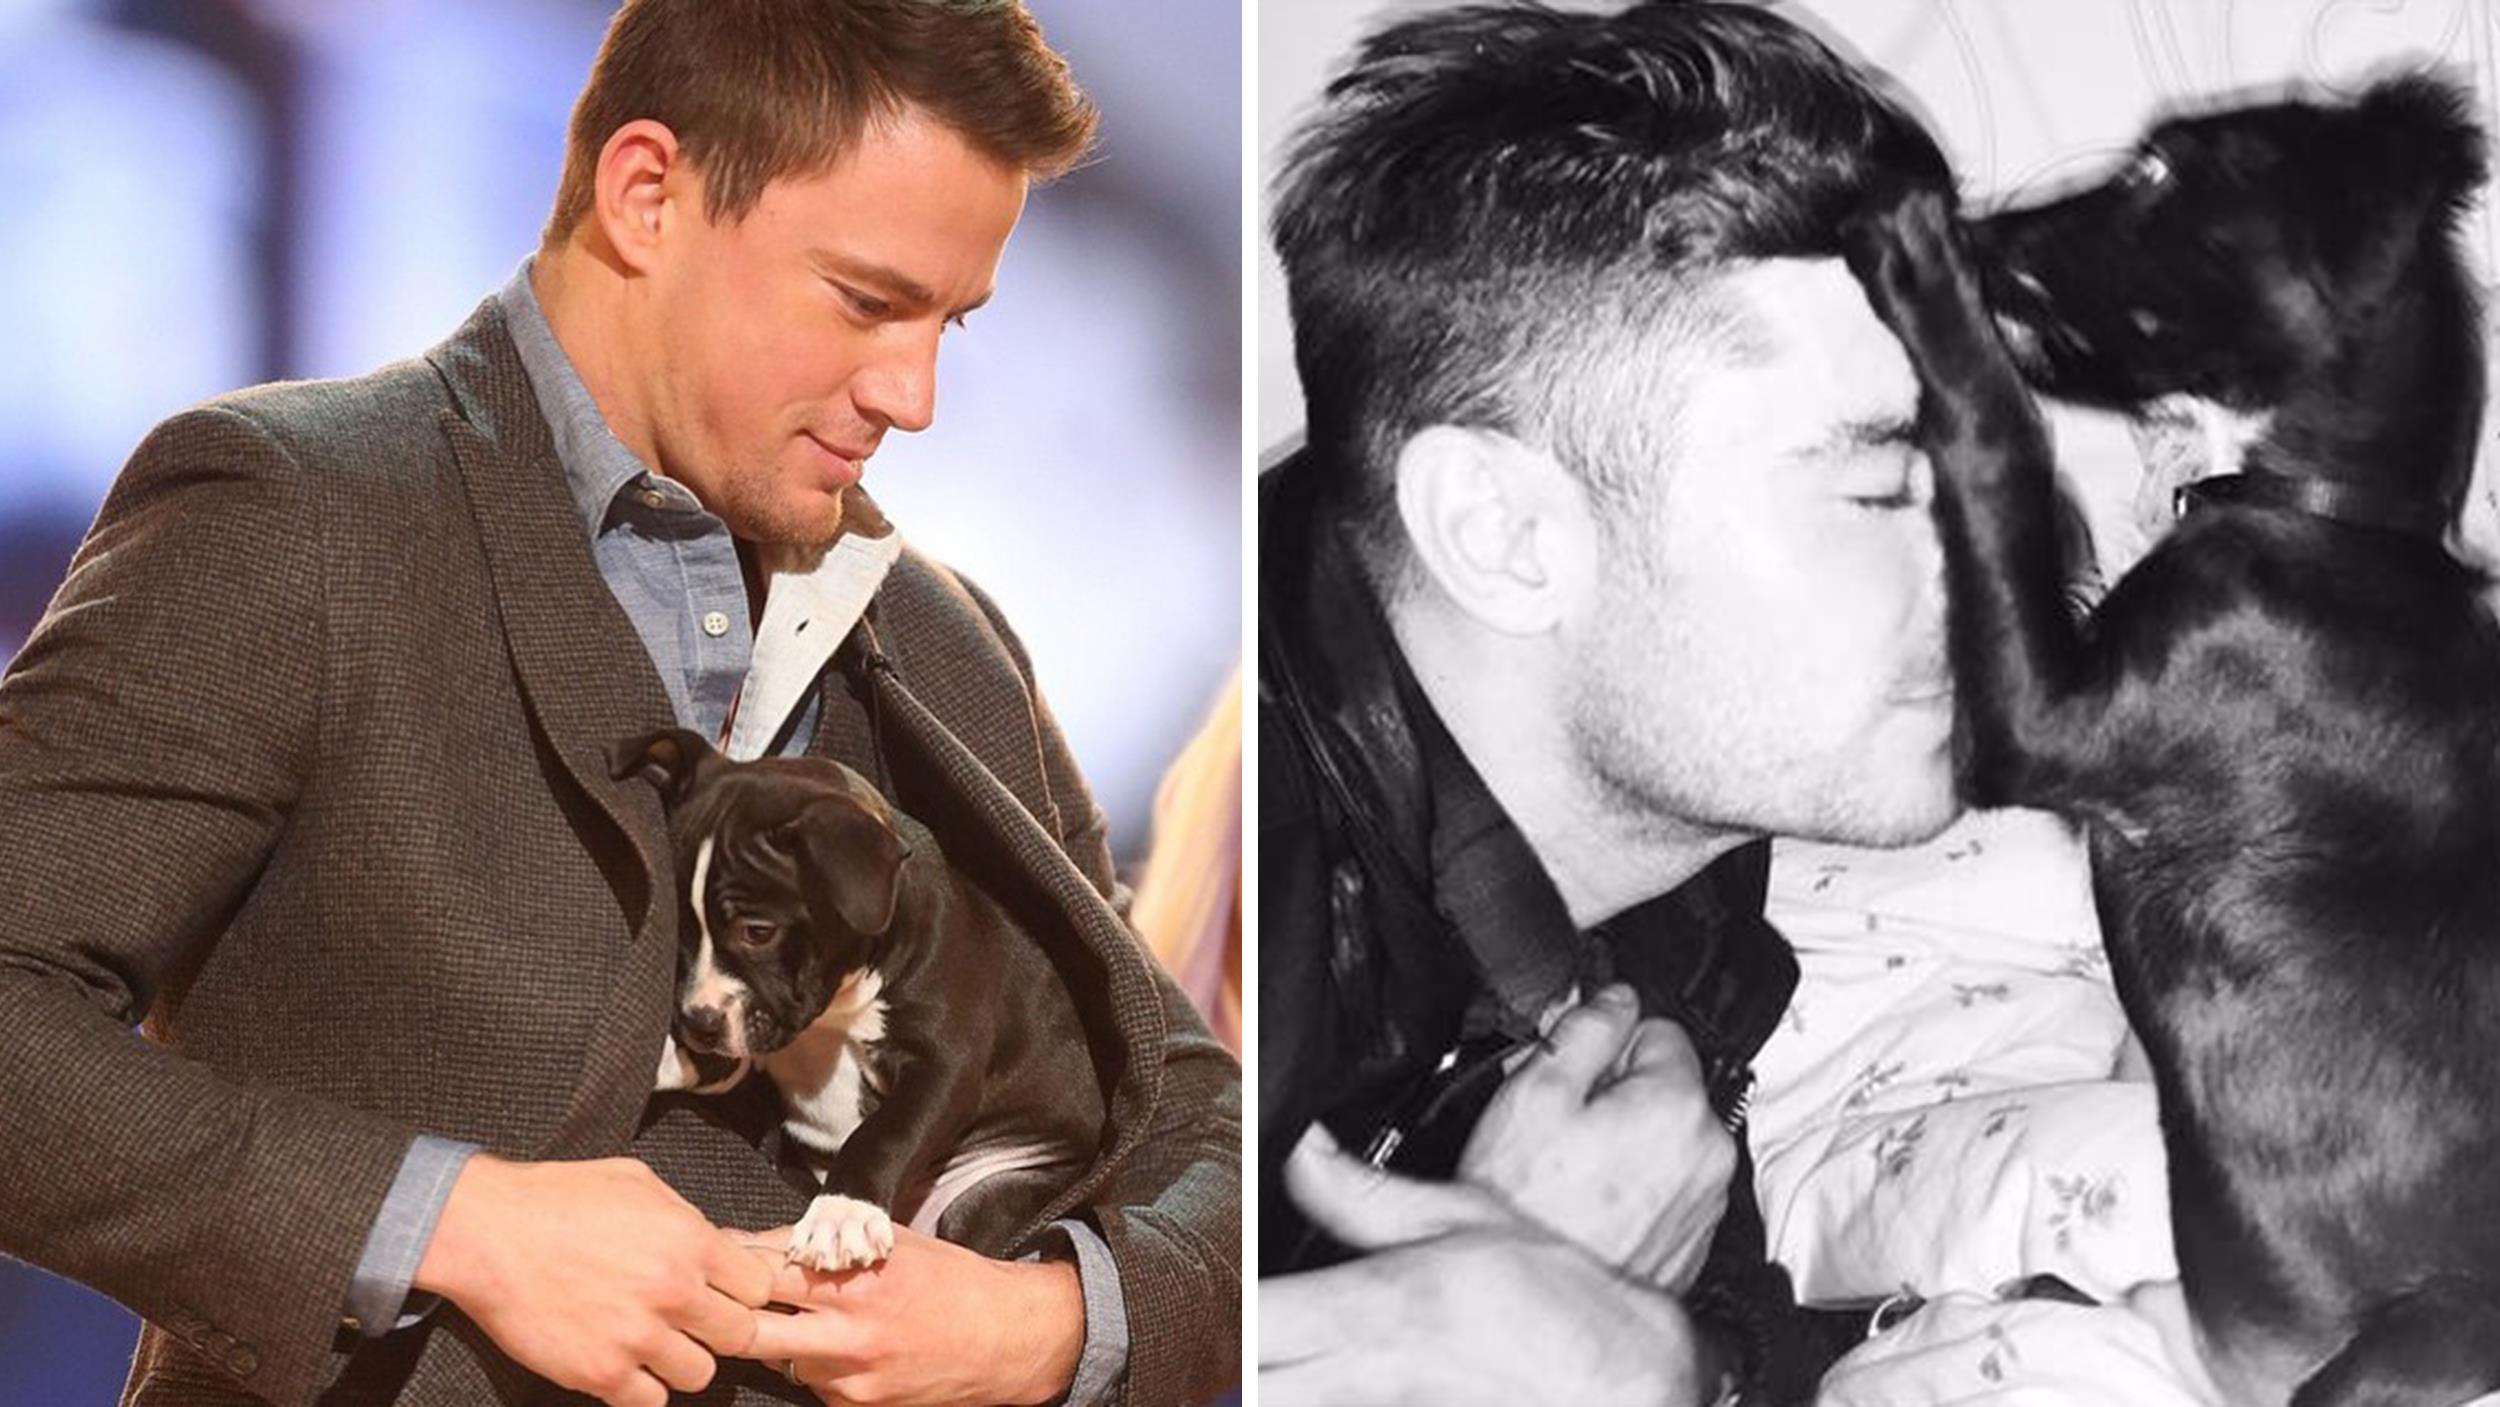 Day photos from zac efron channing tatum and other stars today com